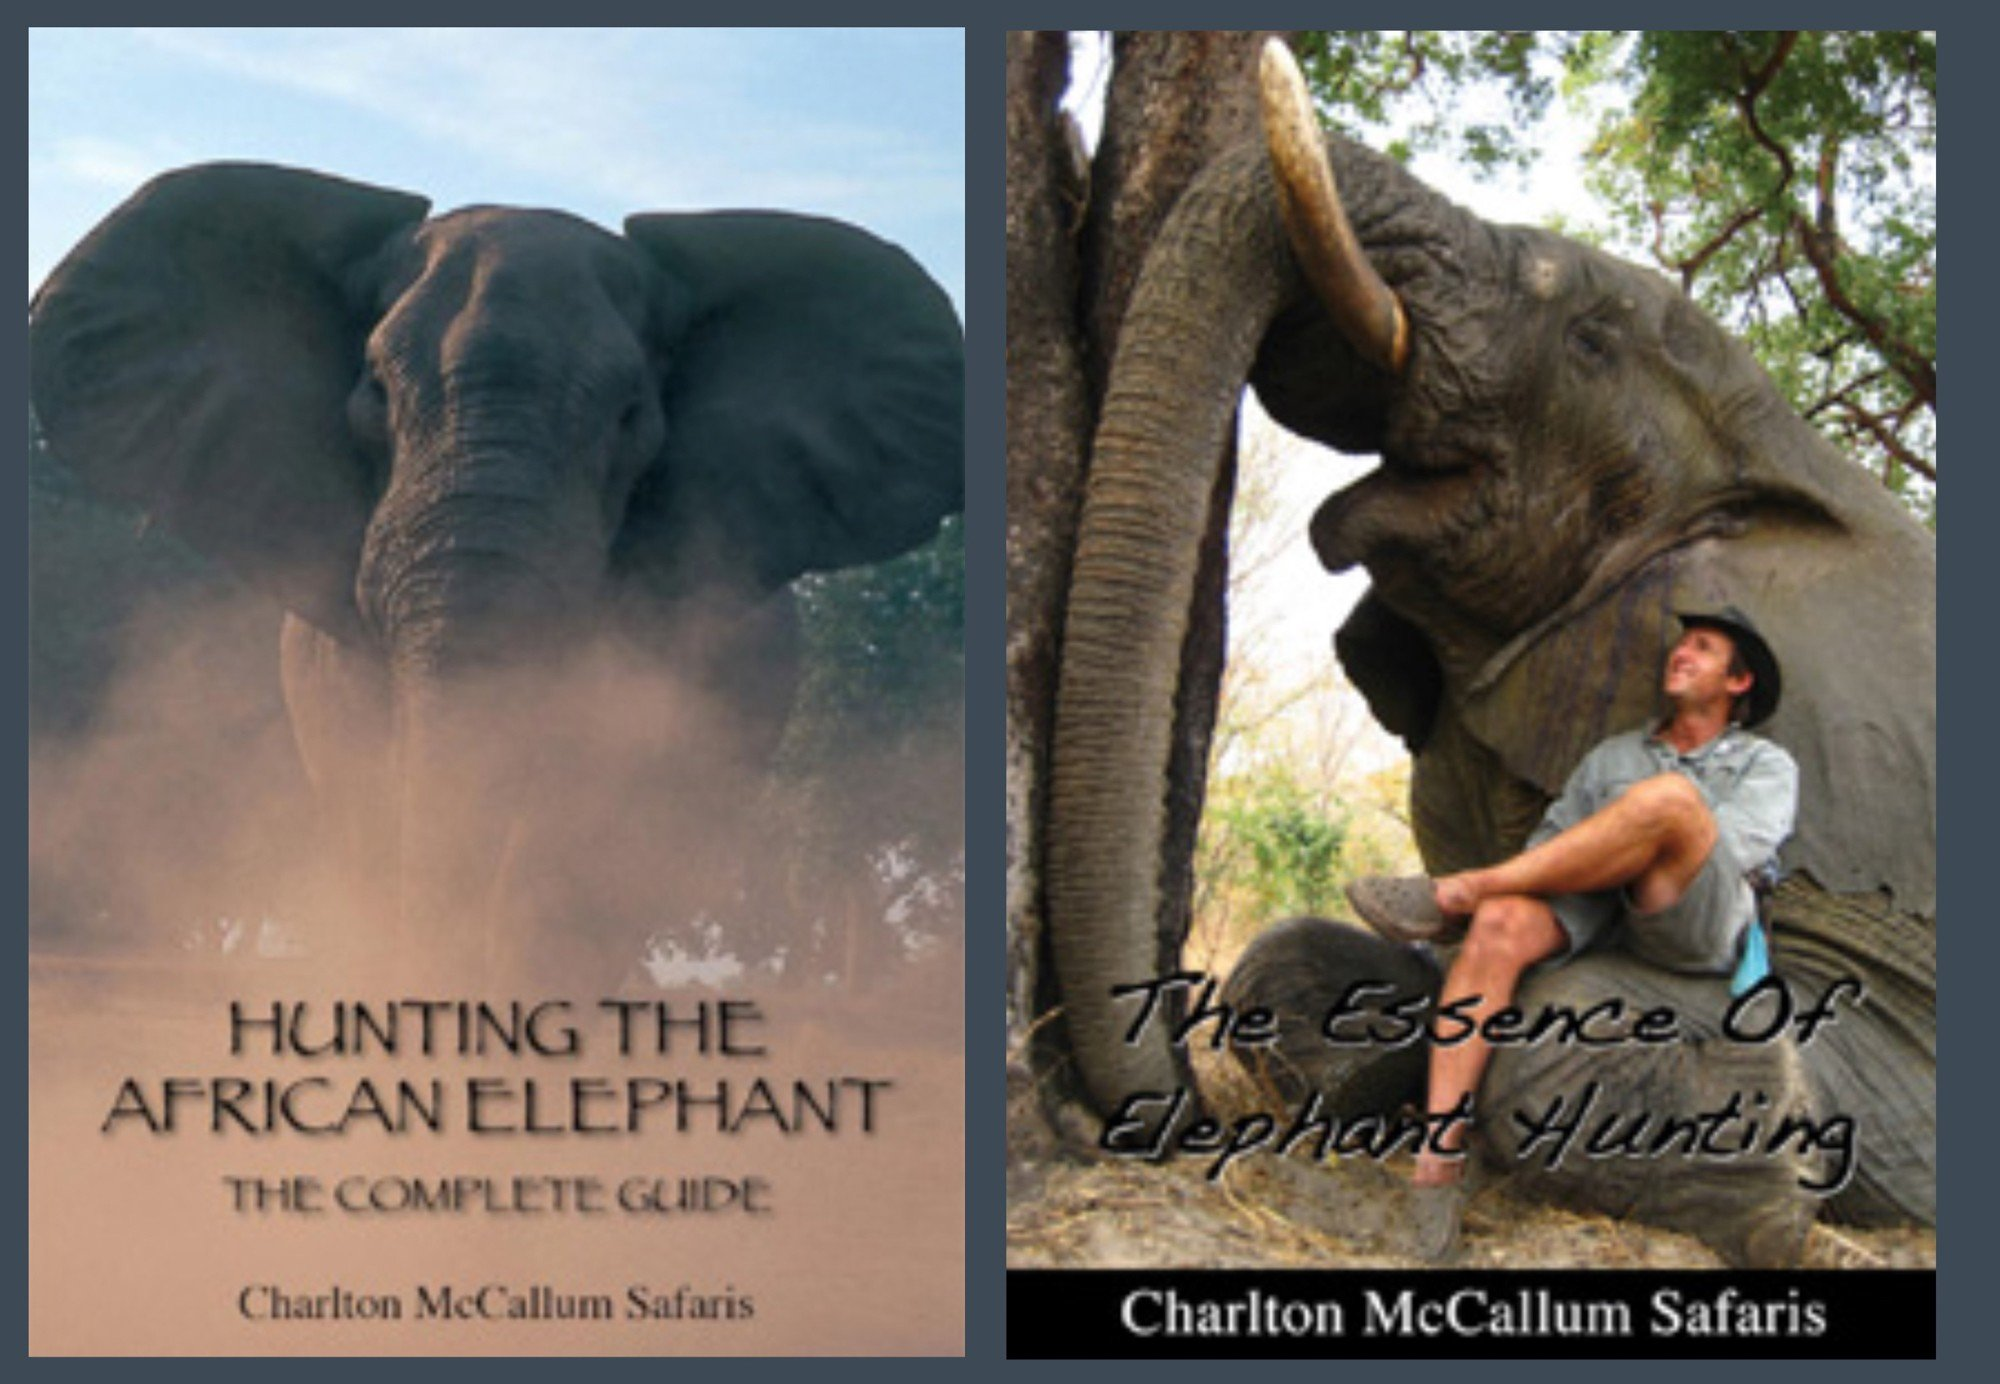 Editorial example of hunting elephants